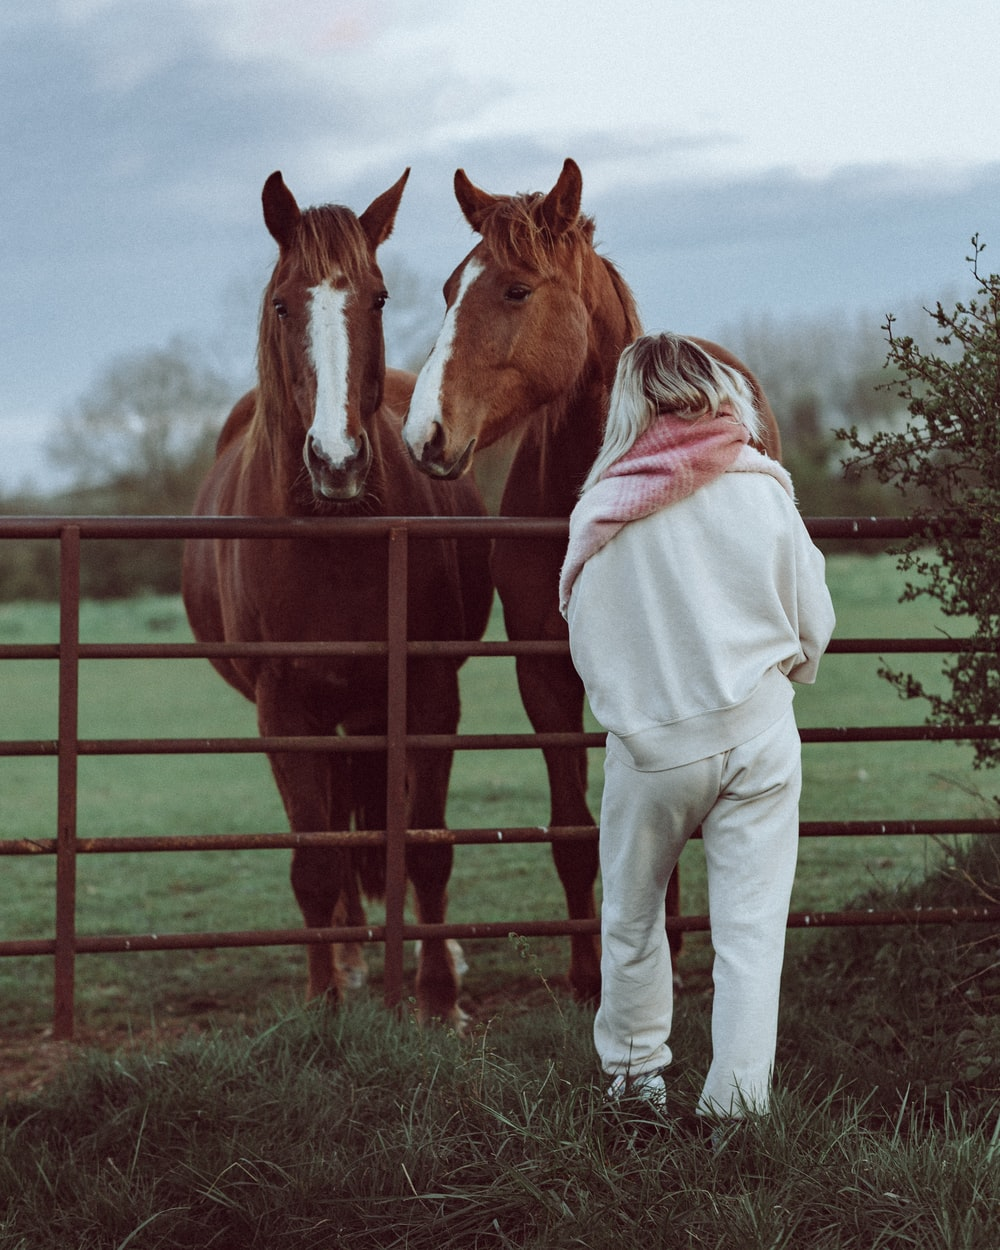 woman in white jacket standing beside brown and white horse during daytime